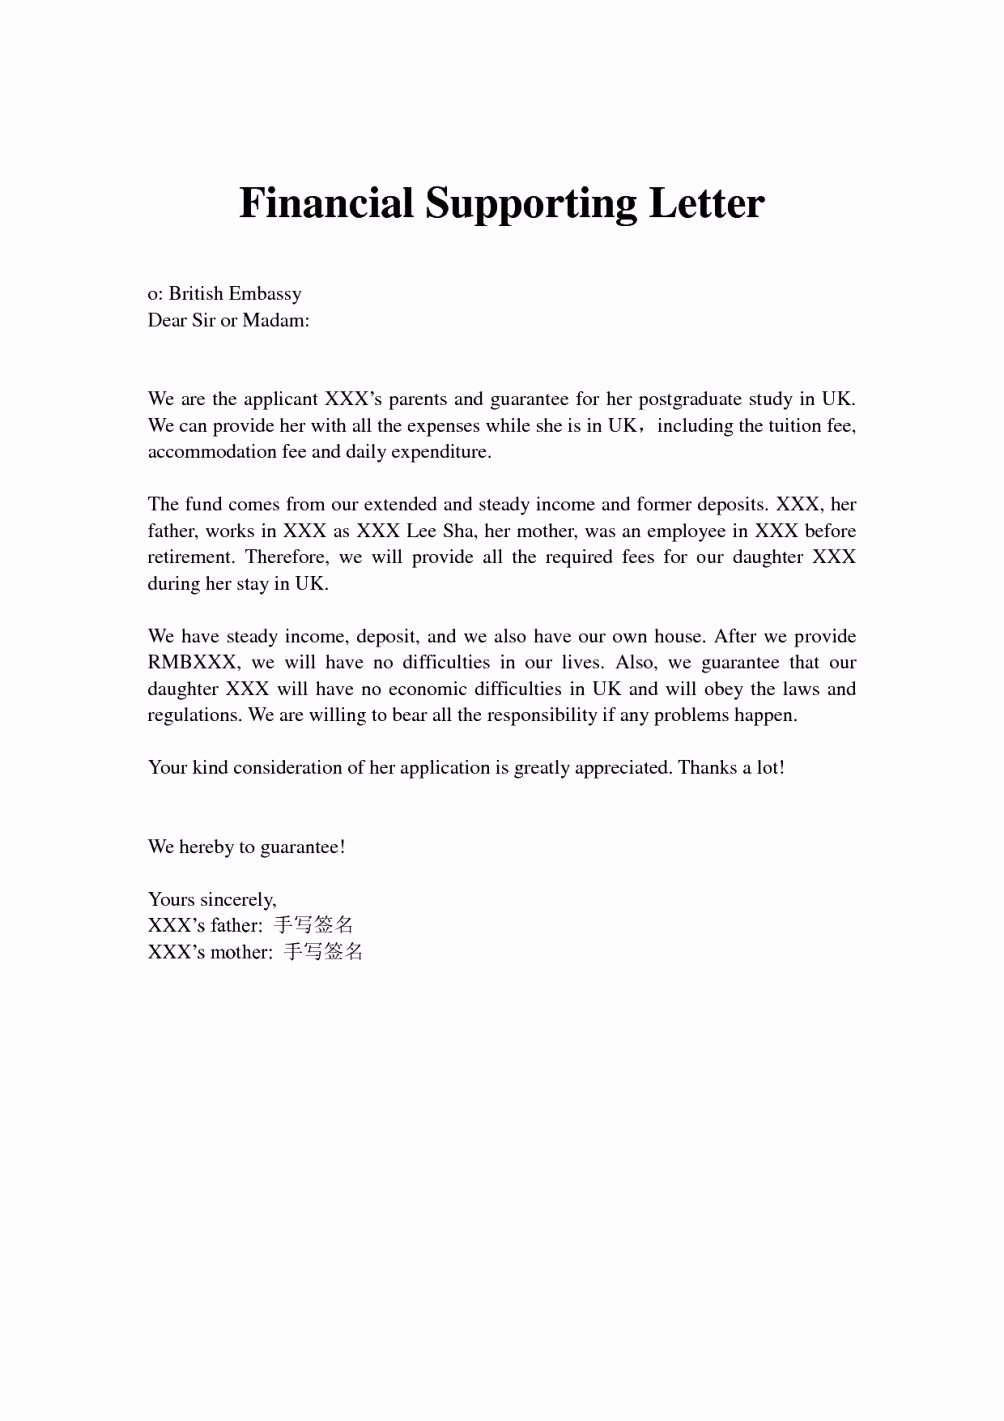 Sample Letter Of Financial Support Best Of Financial Support Letter From Parents Letter